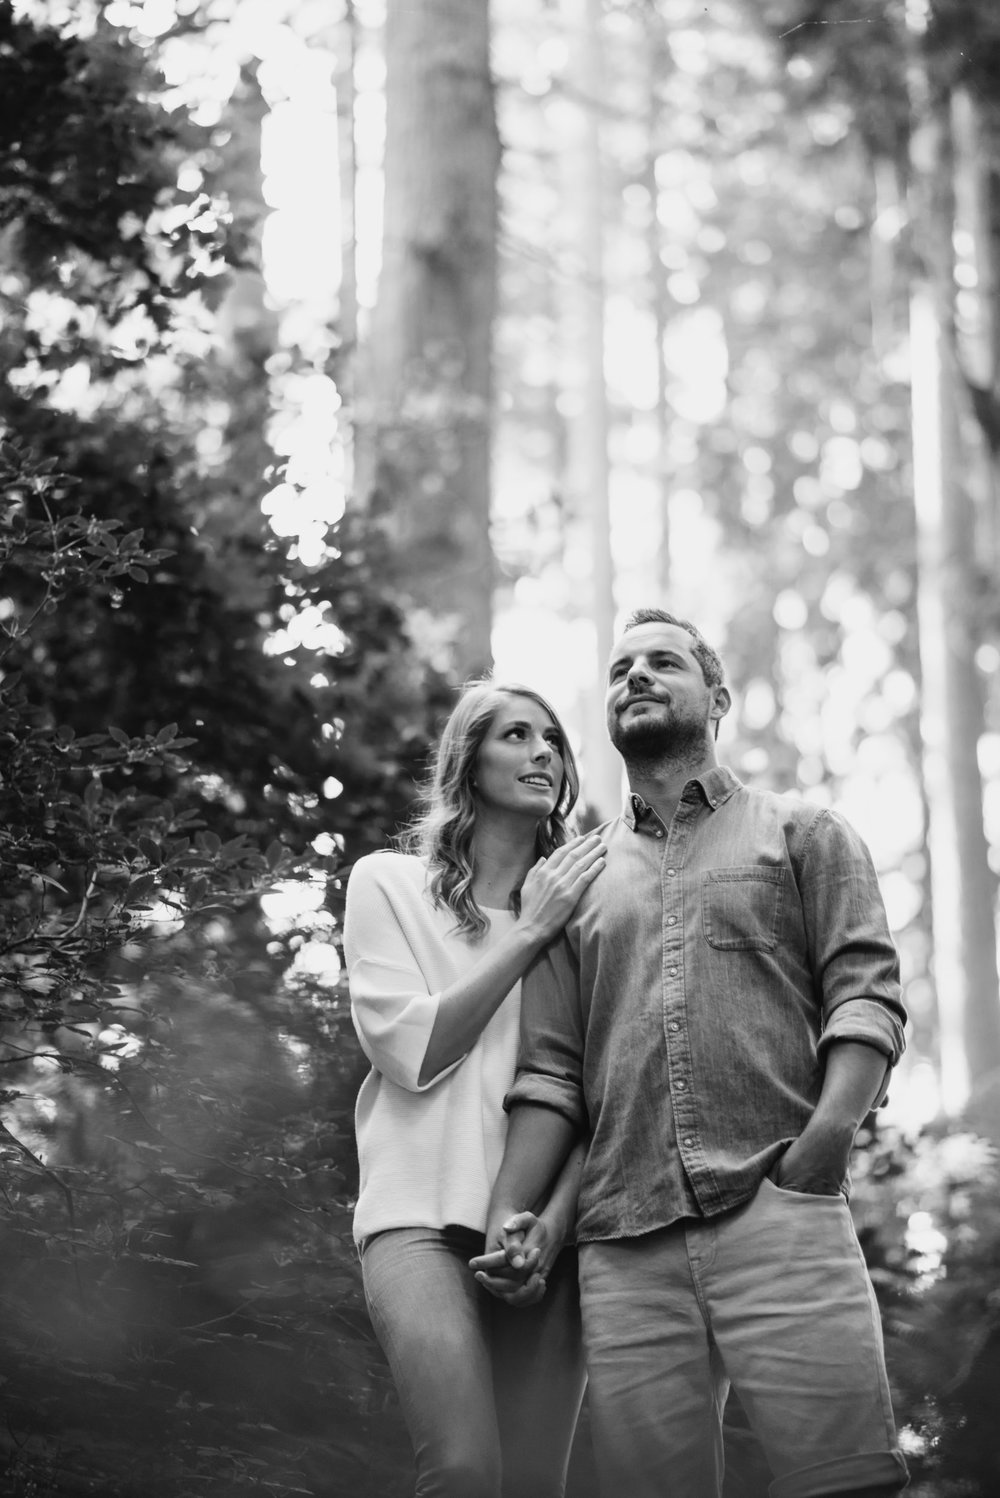 Couple looks off into the distance in the forest